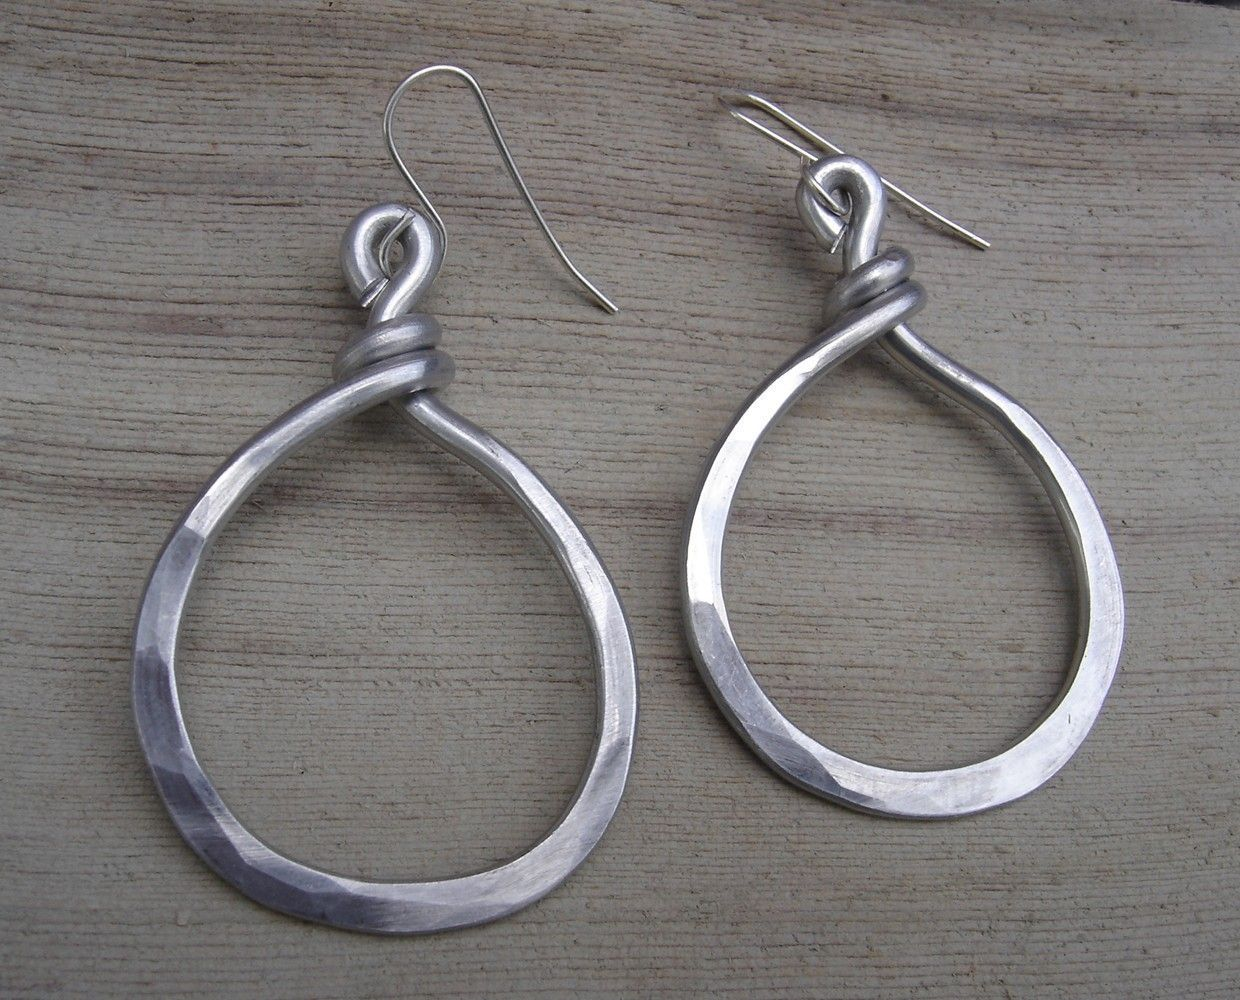 The Big O Circle Hoop Earrings - Light Weight Aluminum Wire ...